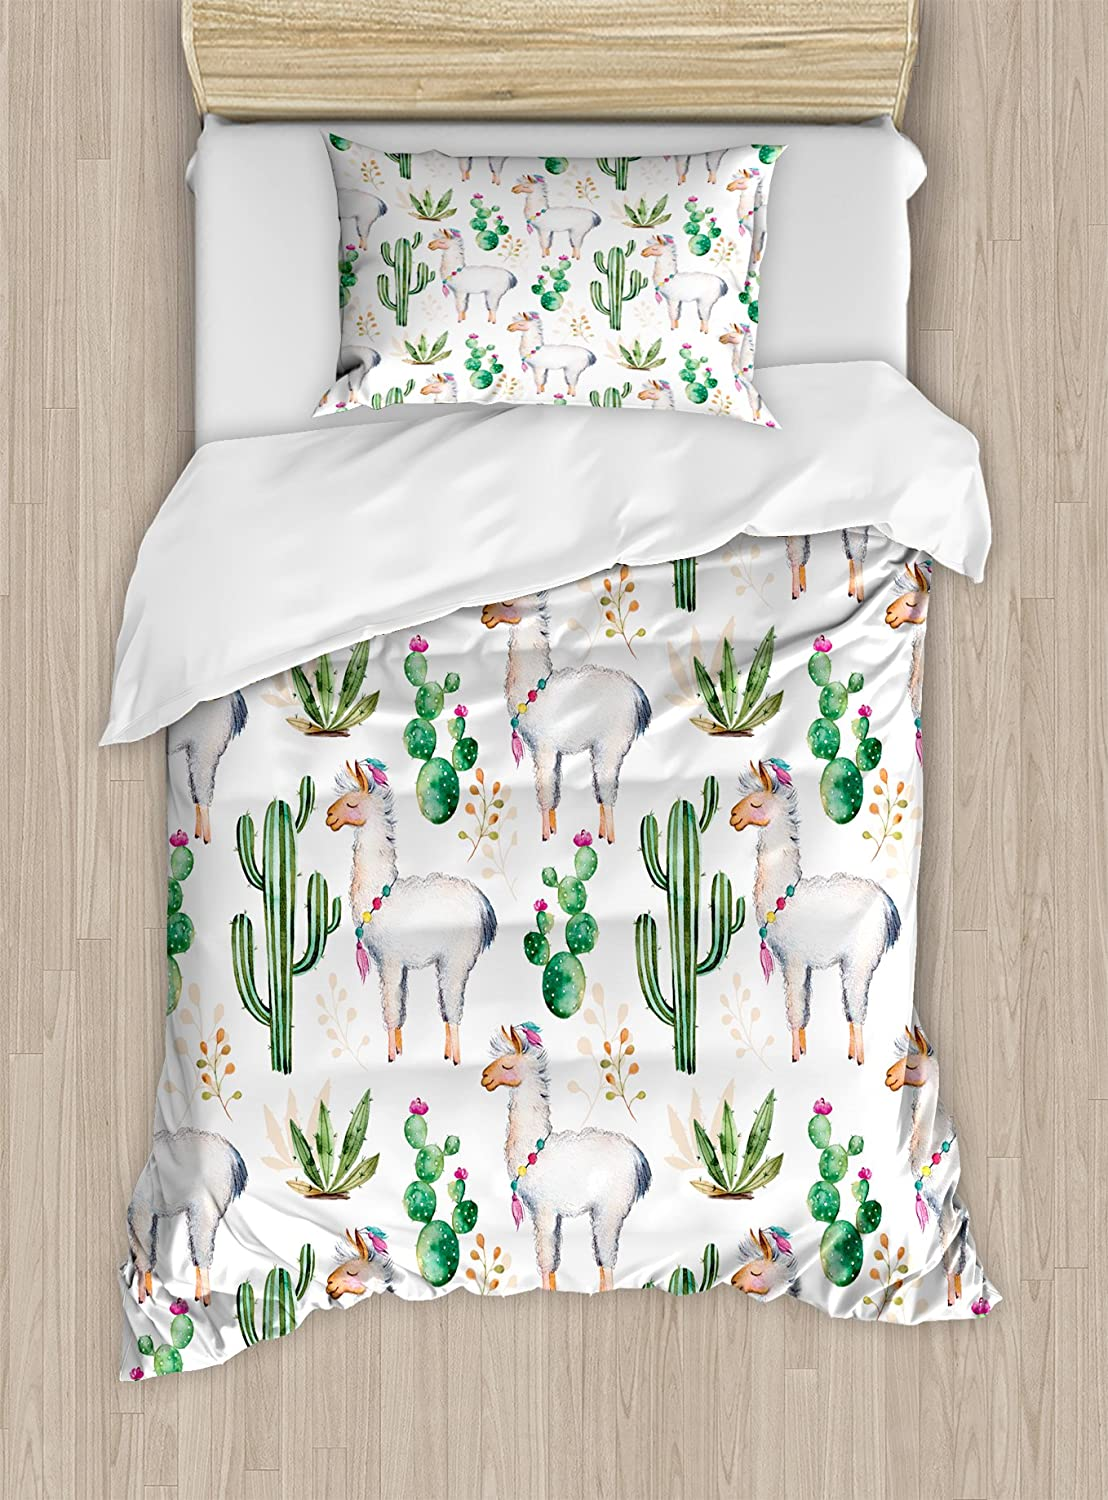 Ambesonne Cactus Duvet Cover Set, Hot South Desert Plant Cactus Pattern with Camel Animal Modern Colored Image Print, Decorative 2 Piece Bedding Set with 1 Pillow Sham, Twin Size, White Green